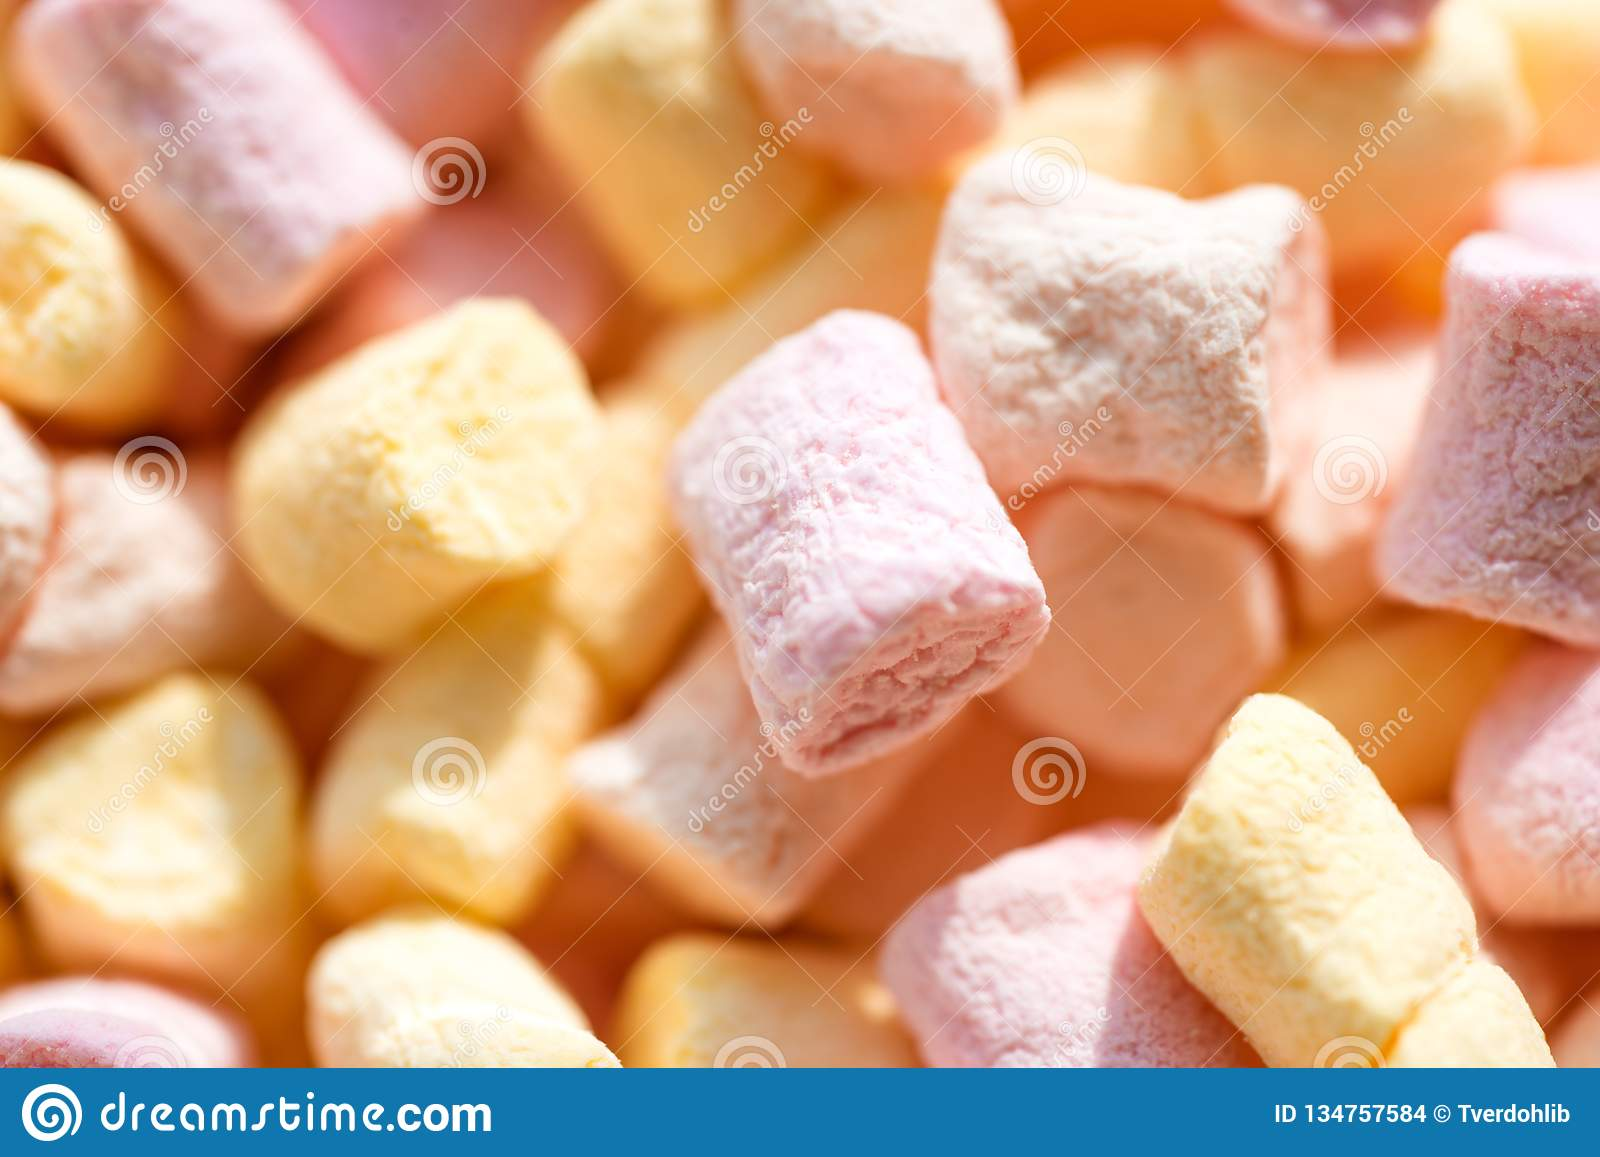 Sugar confectionery. Marshmallow souffle with sweet flavor. Colorful mini marshmallow background or texture. Marshmallow